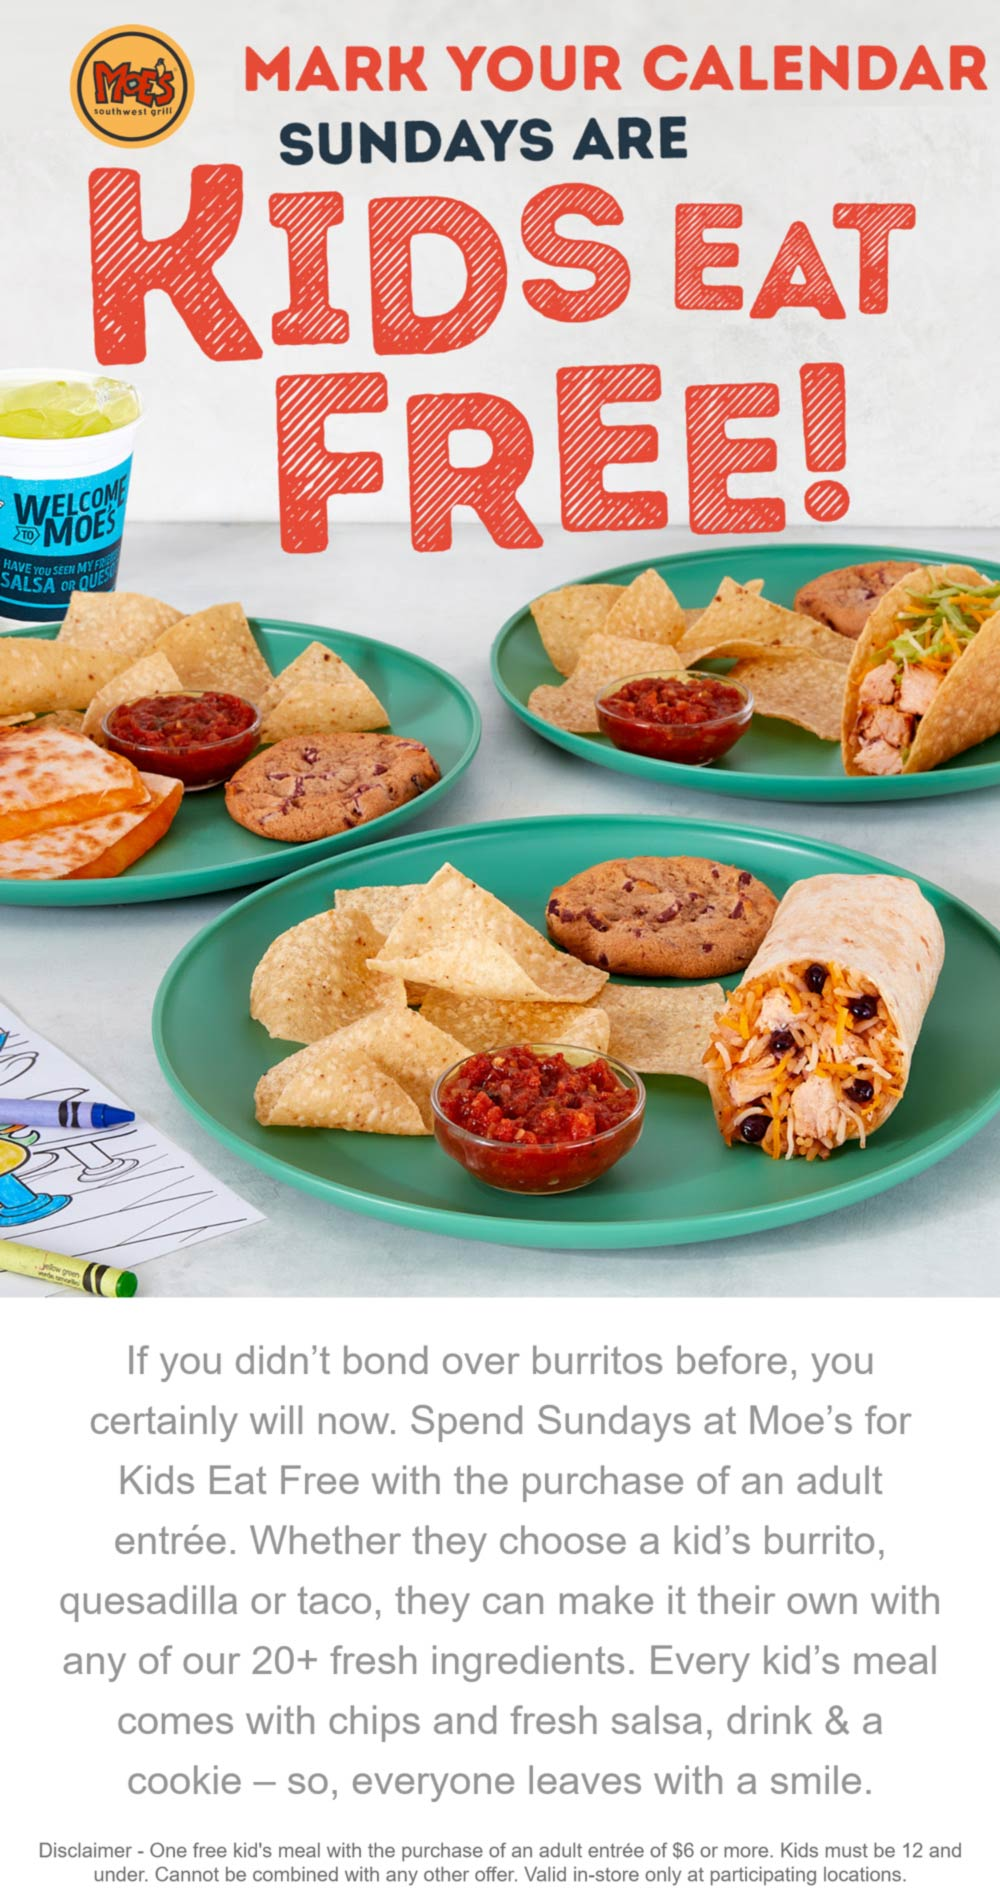 Moes Southwest Grill restaurants Coupon  Kids eat free Sundays with your entree at Moes Southwest Grill #moessouthwestgrill